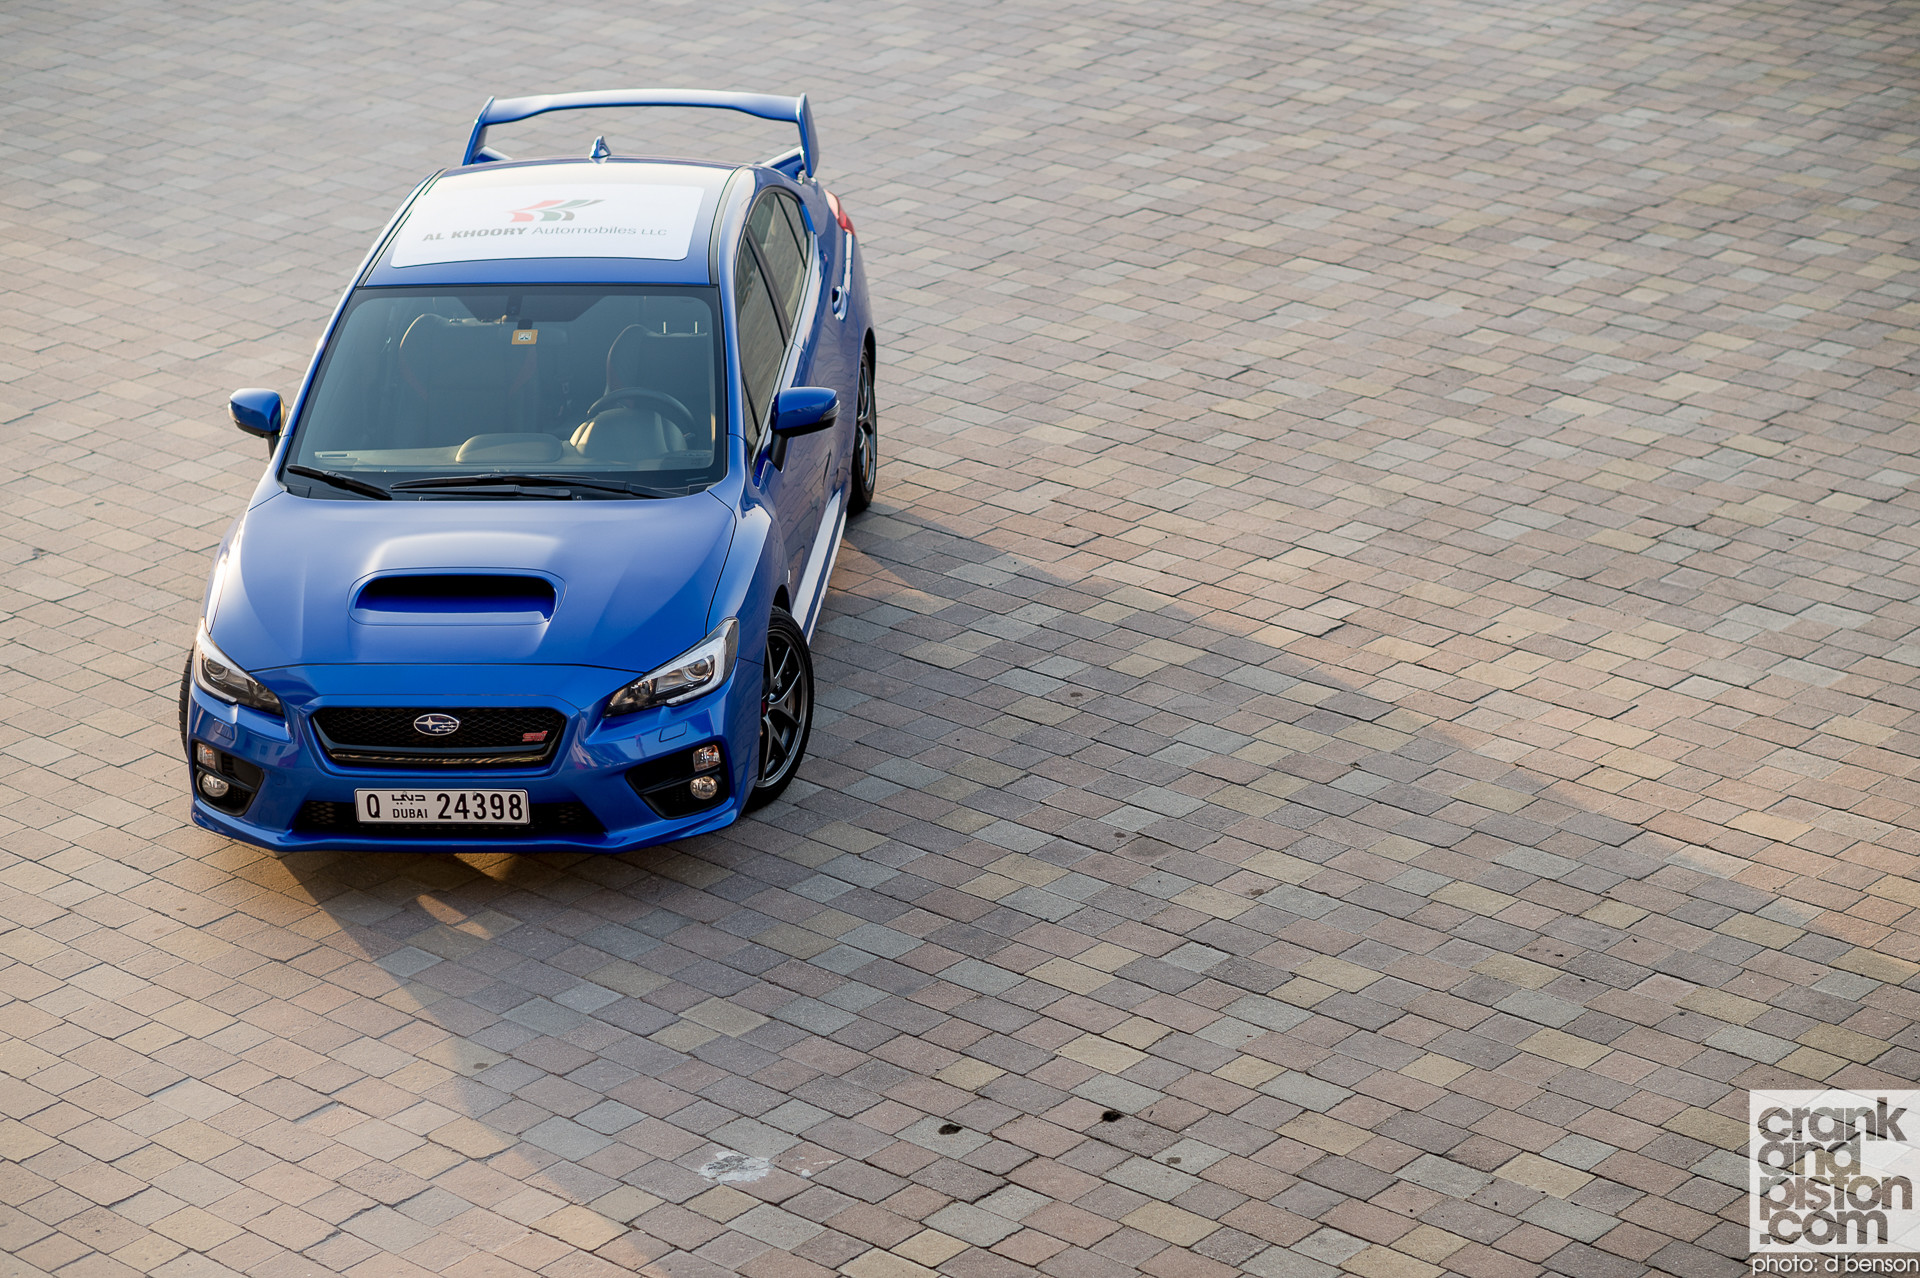 2560x1440 Subaru Wrx Jdm Sti Cars Hd Wallpaper   Cars Vehicles Jdm  Wallpaper. Download